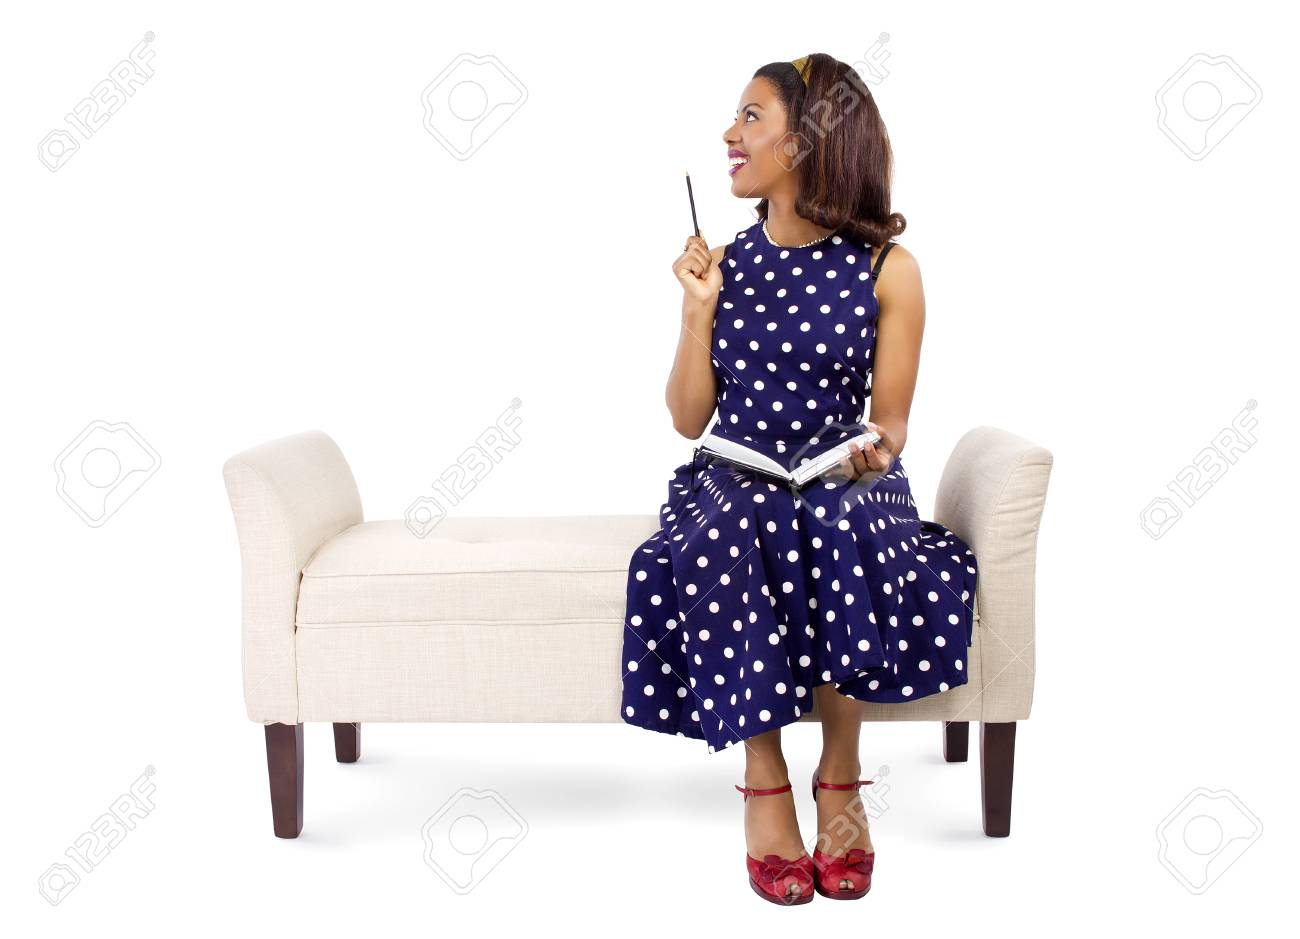 Vintage Style Black Female Author Writing And Sitting On A Chaise